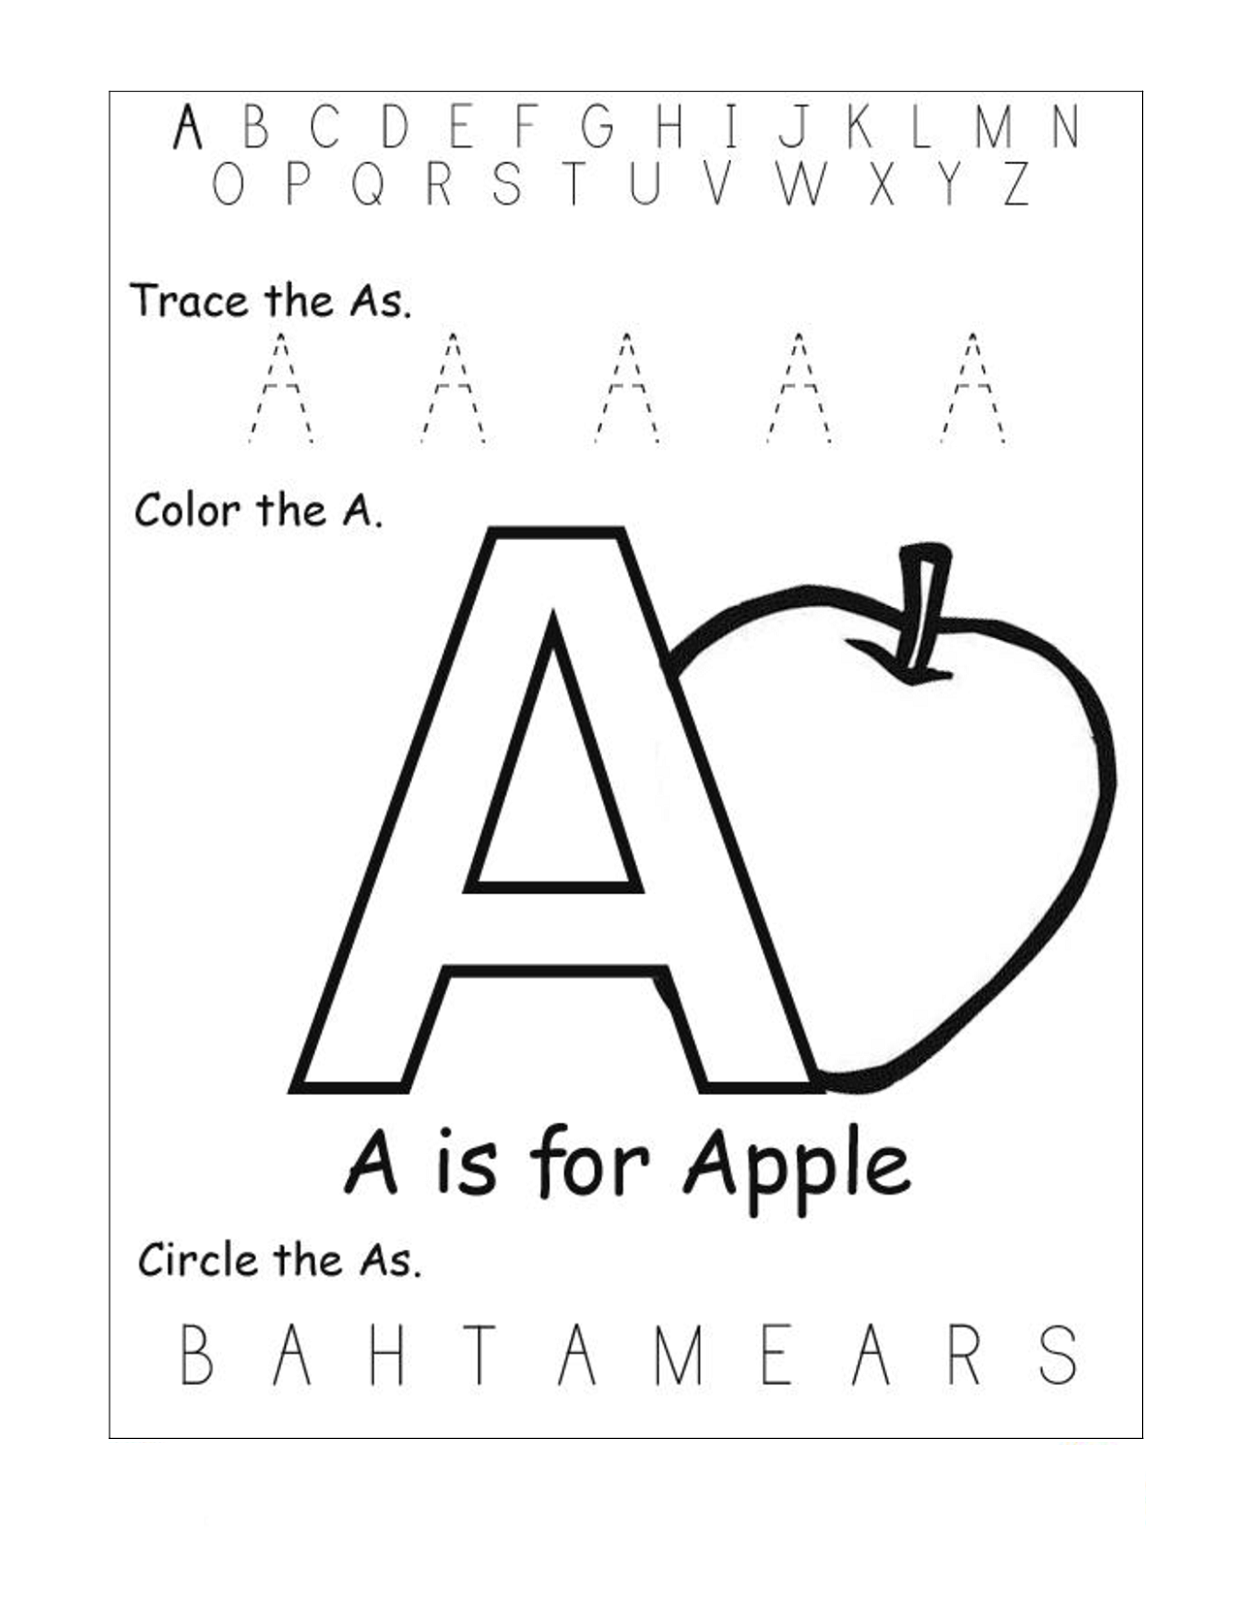 Worksheet Free Abc Worksheets For Pre-k free abc worksheets for pre k activity shelter letter a